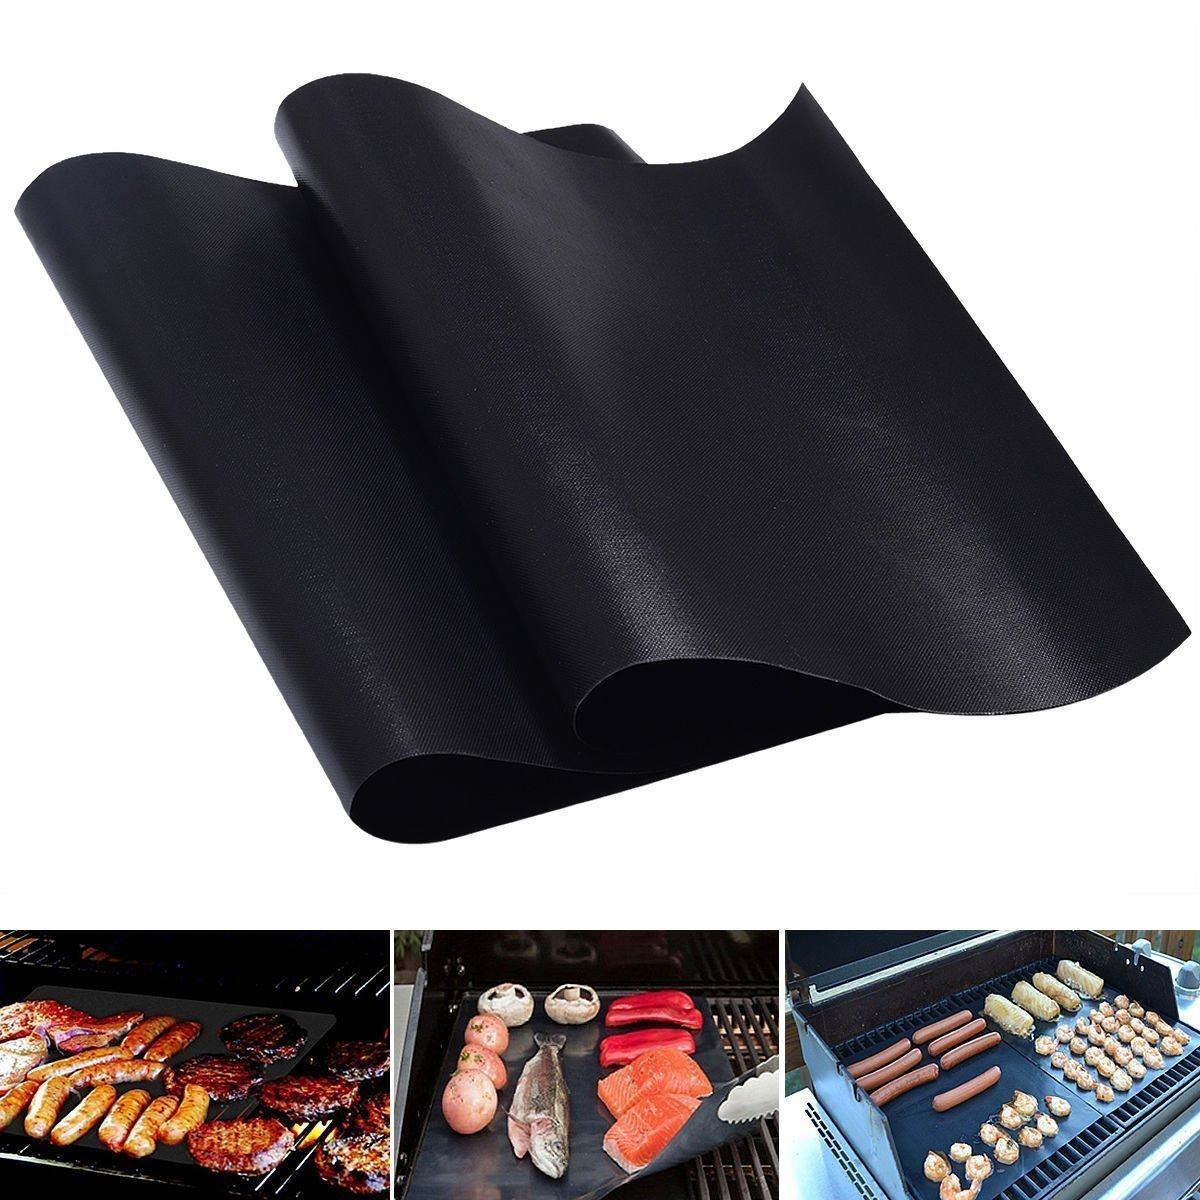 BBQ Grill Mats (2 Pack) BBQ Grilling & Smoking Accessory I Love Grilling Meat